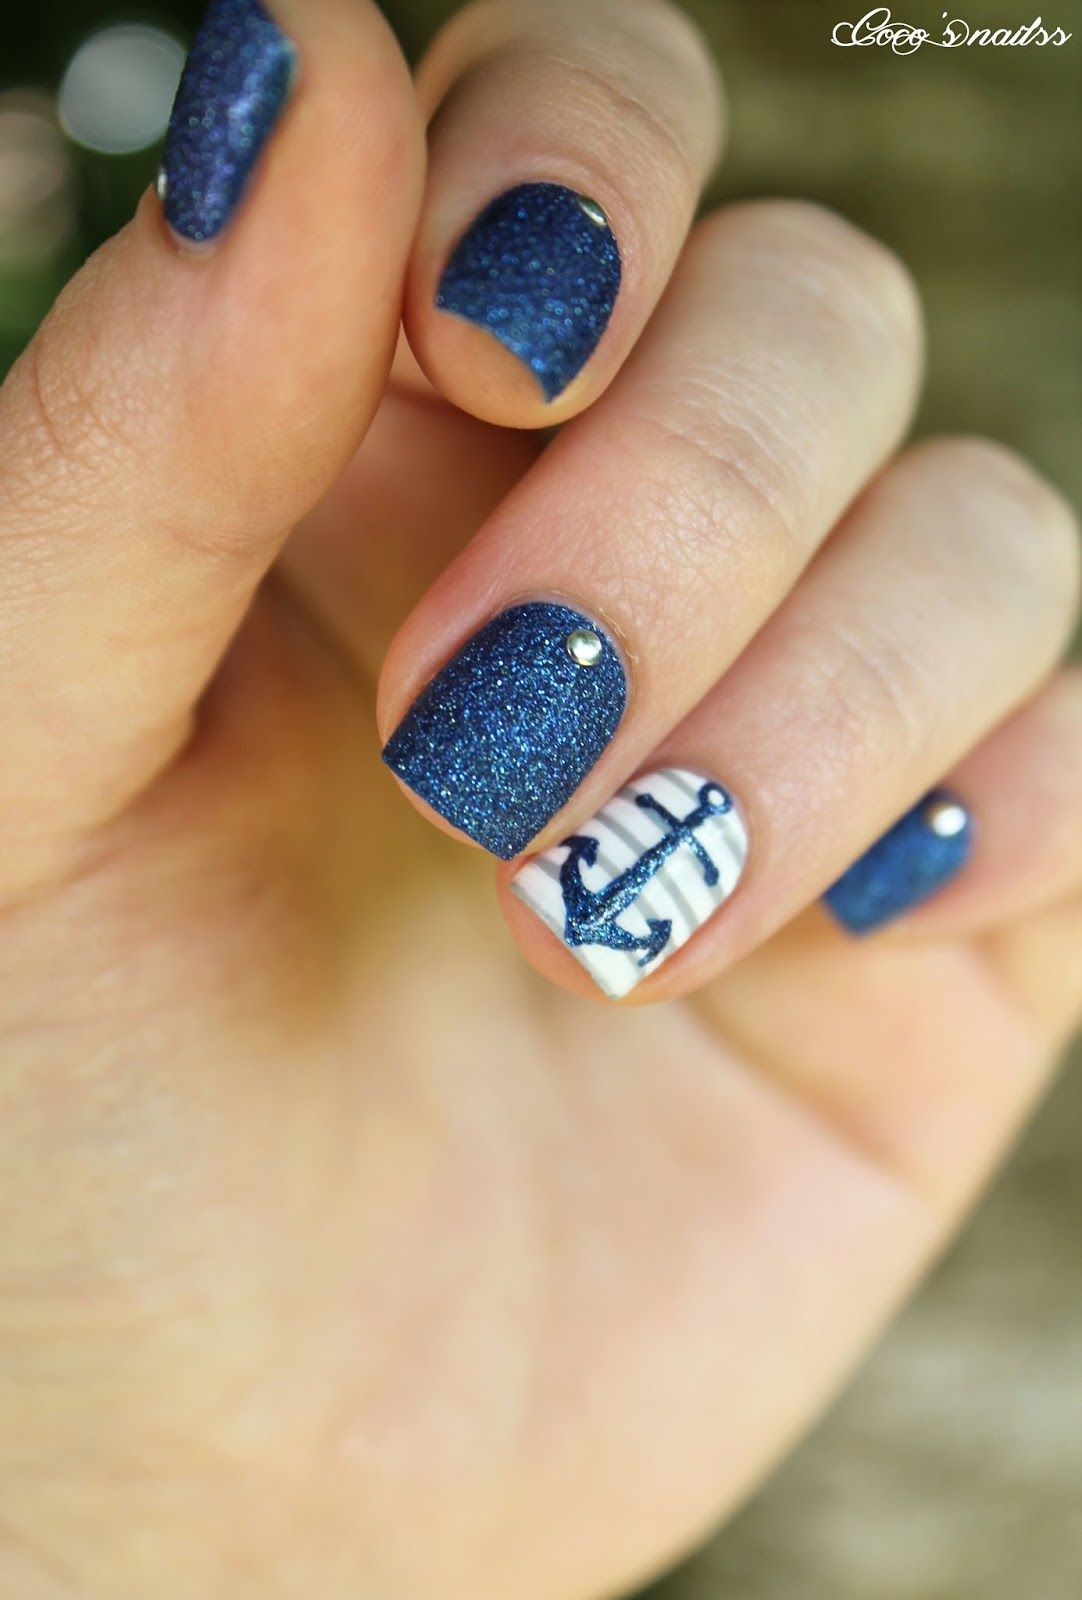 65+Most Eye Catching Beautiful Nail Art Ideas | Nautical nail art ...